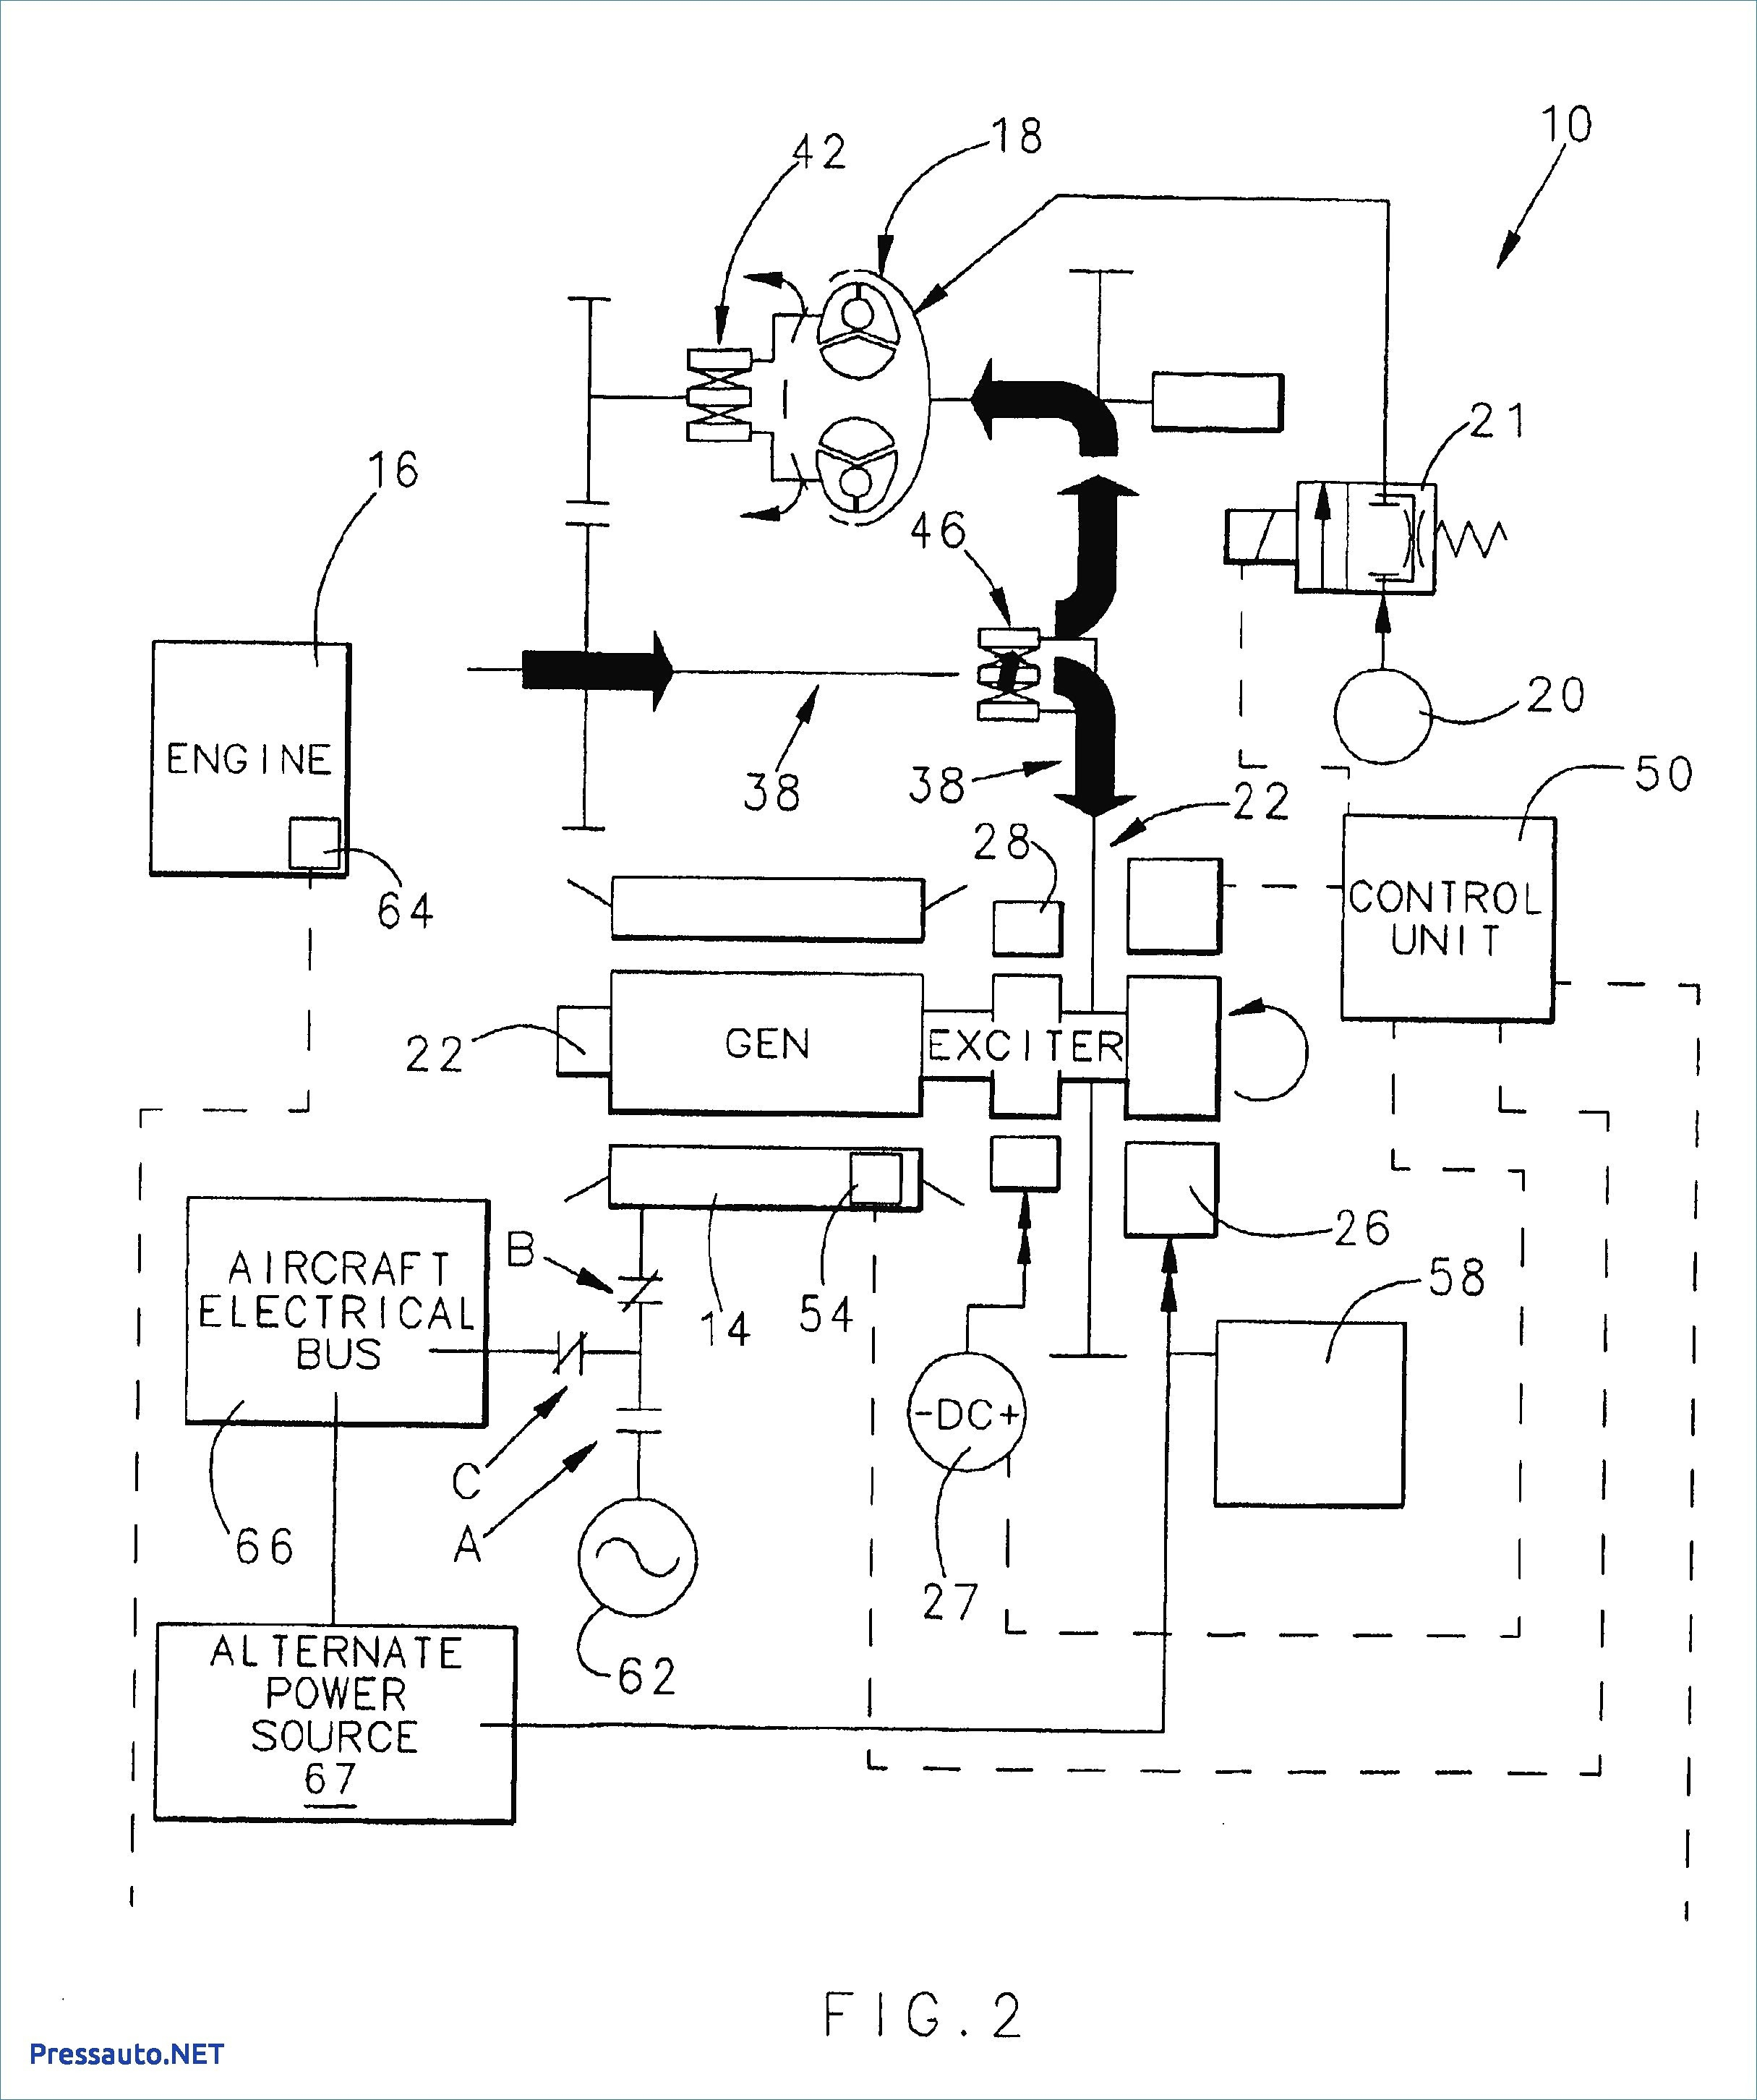 4 Wire Alternator Diagram Mitsubishi